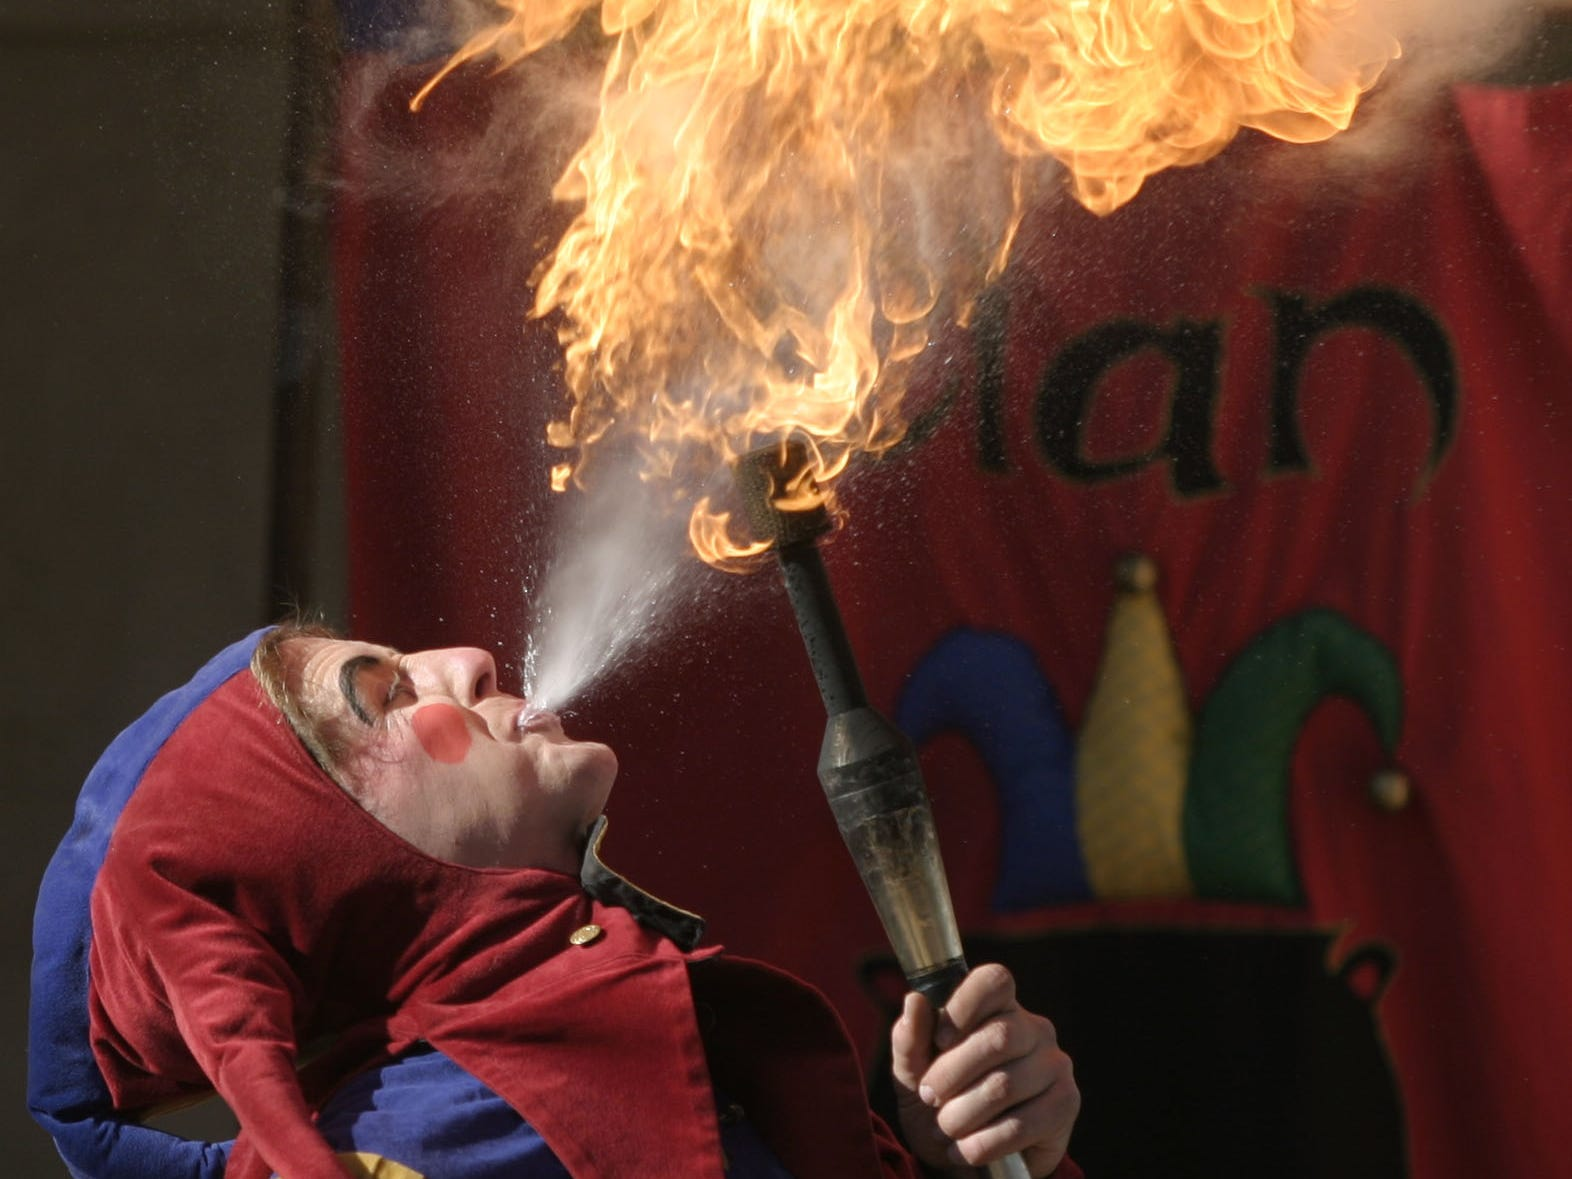 Elijah Tynker blows a fire ball on the Teatro de la Rosa stage during a performance at the Arizona Renaissance Festival in 2004.